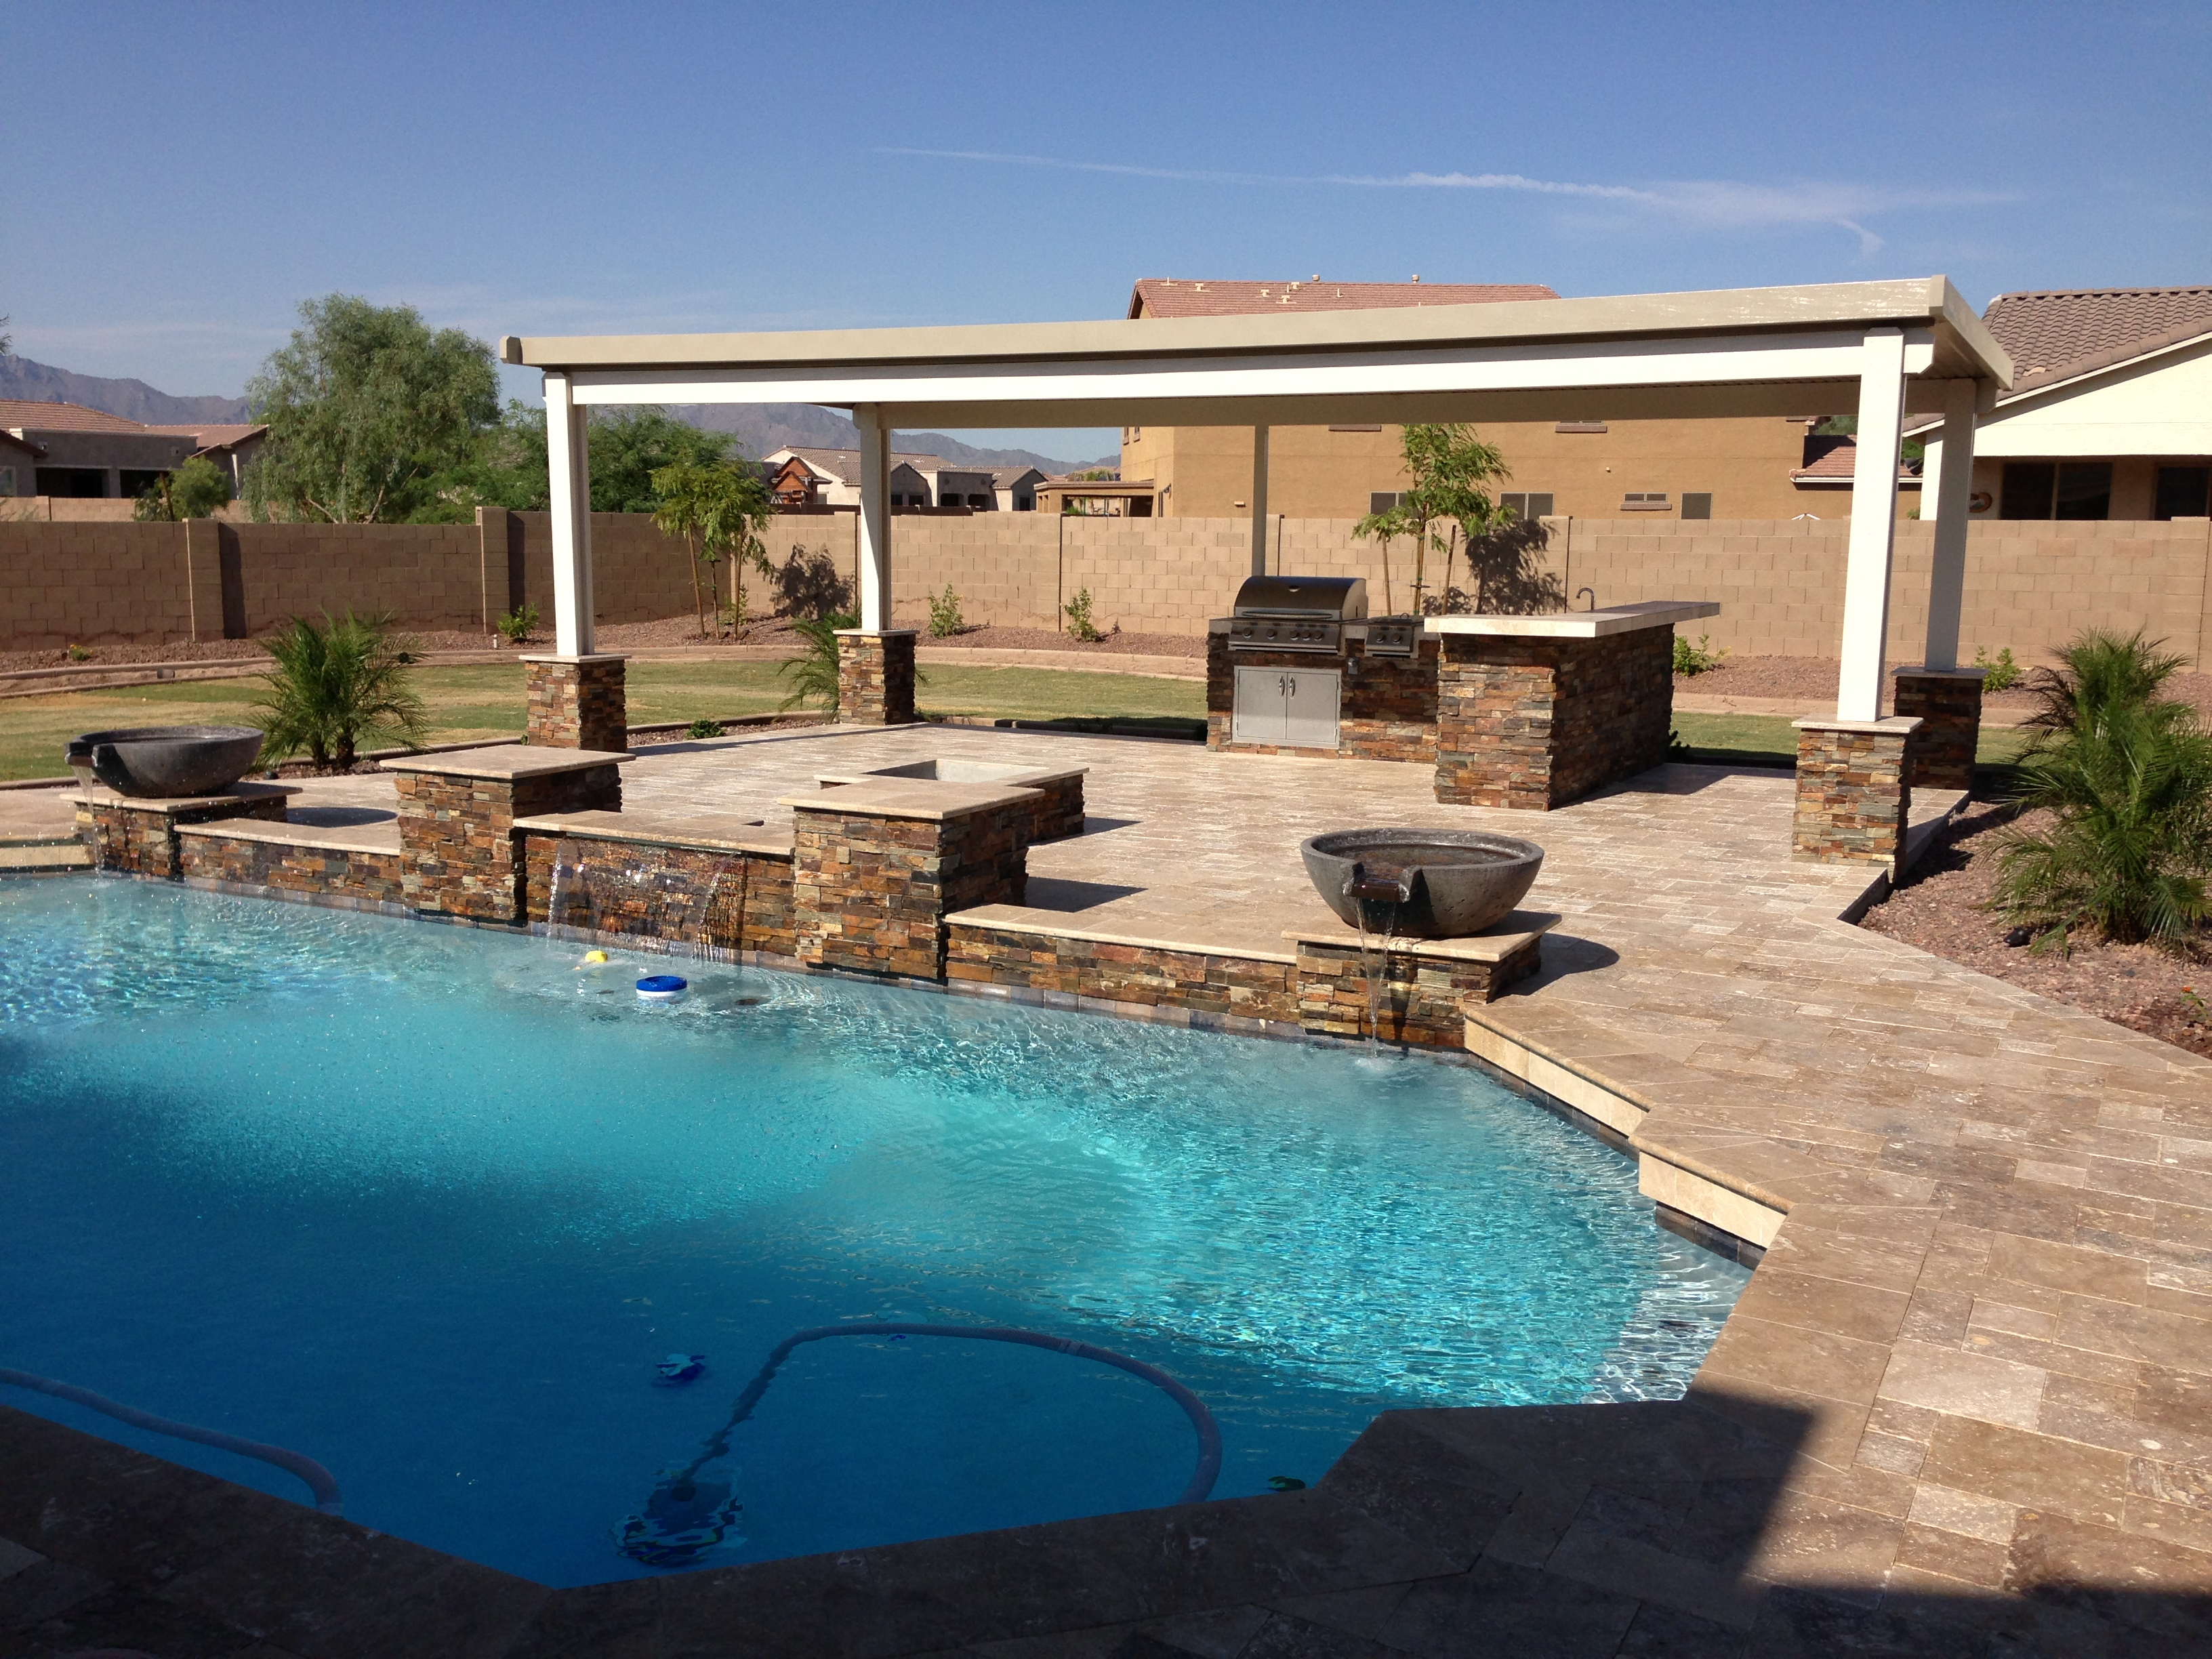 Serene S Pavers Small Backyard Landscape Ideas S Backyard Landscaping Ideas Arizona Landscape Outdoor Living At Phoenix Landscaping Outdoor outdoor Backyard Landscape Ideas With Pool